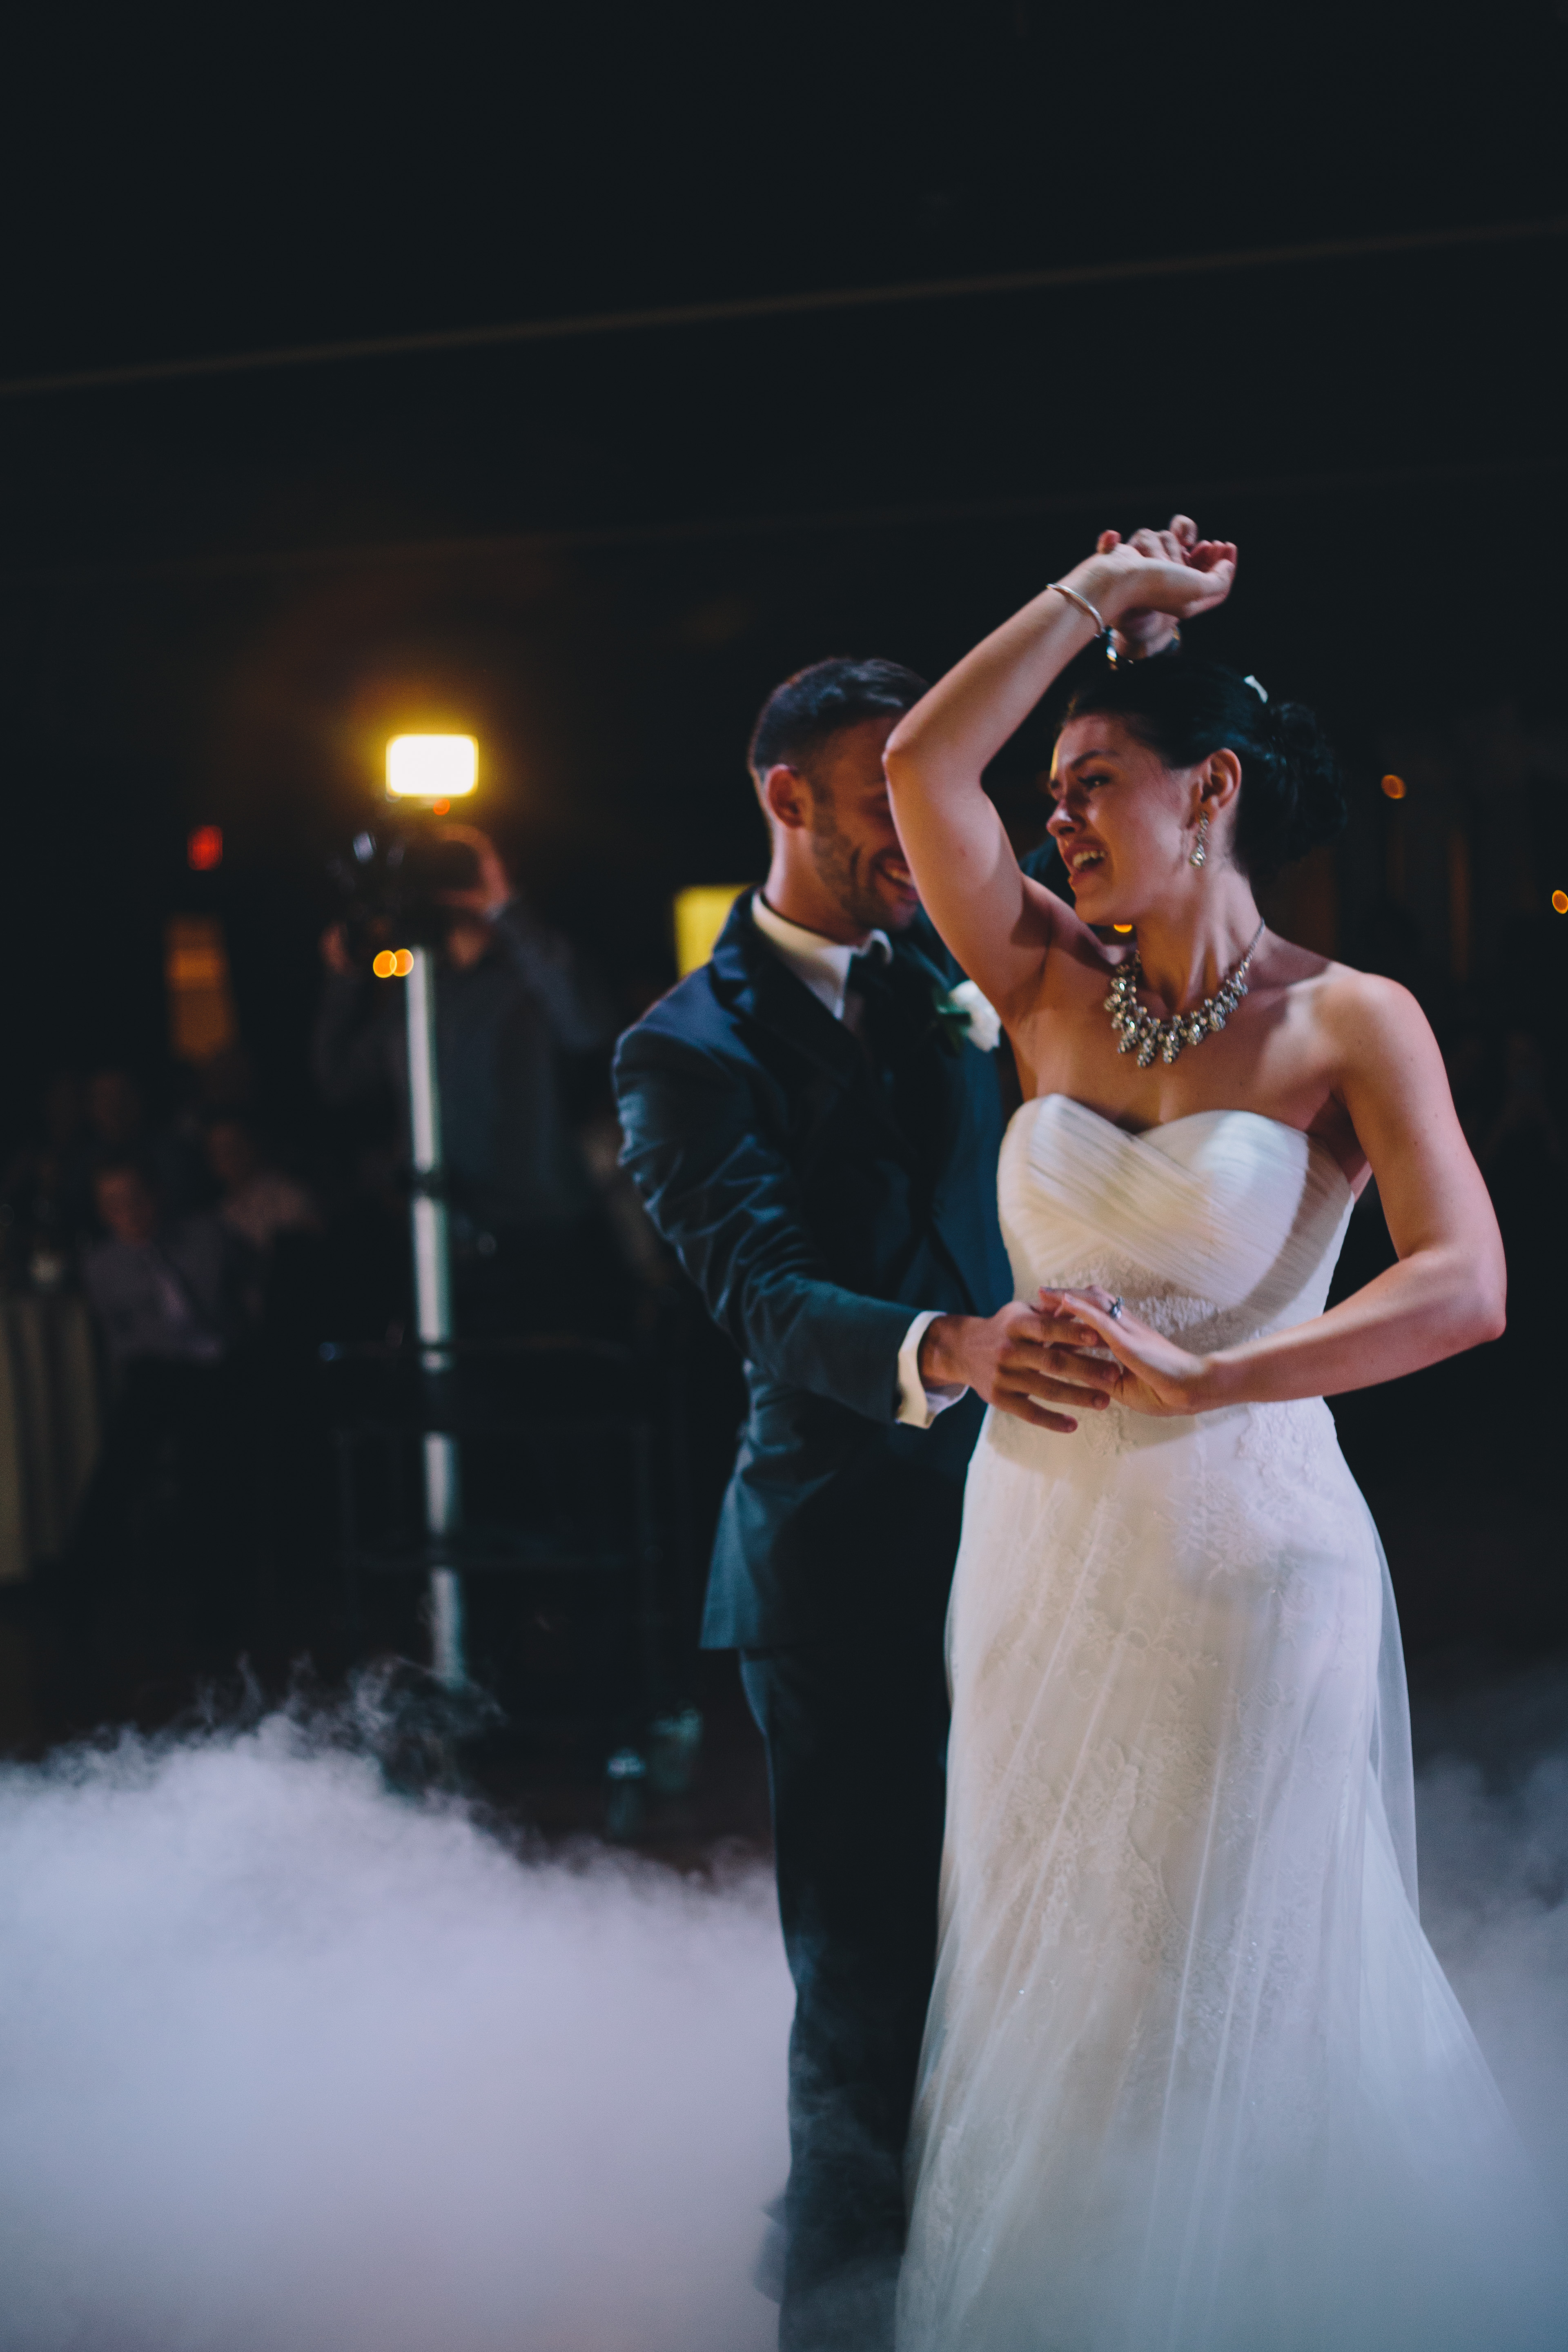 A smoke machine fills the dancefloor of this Jewish wedding as the Bride and groom share their first dance as husband and wife at the Palais Royale in Toronto, Ontario